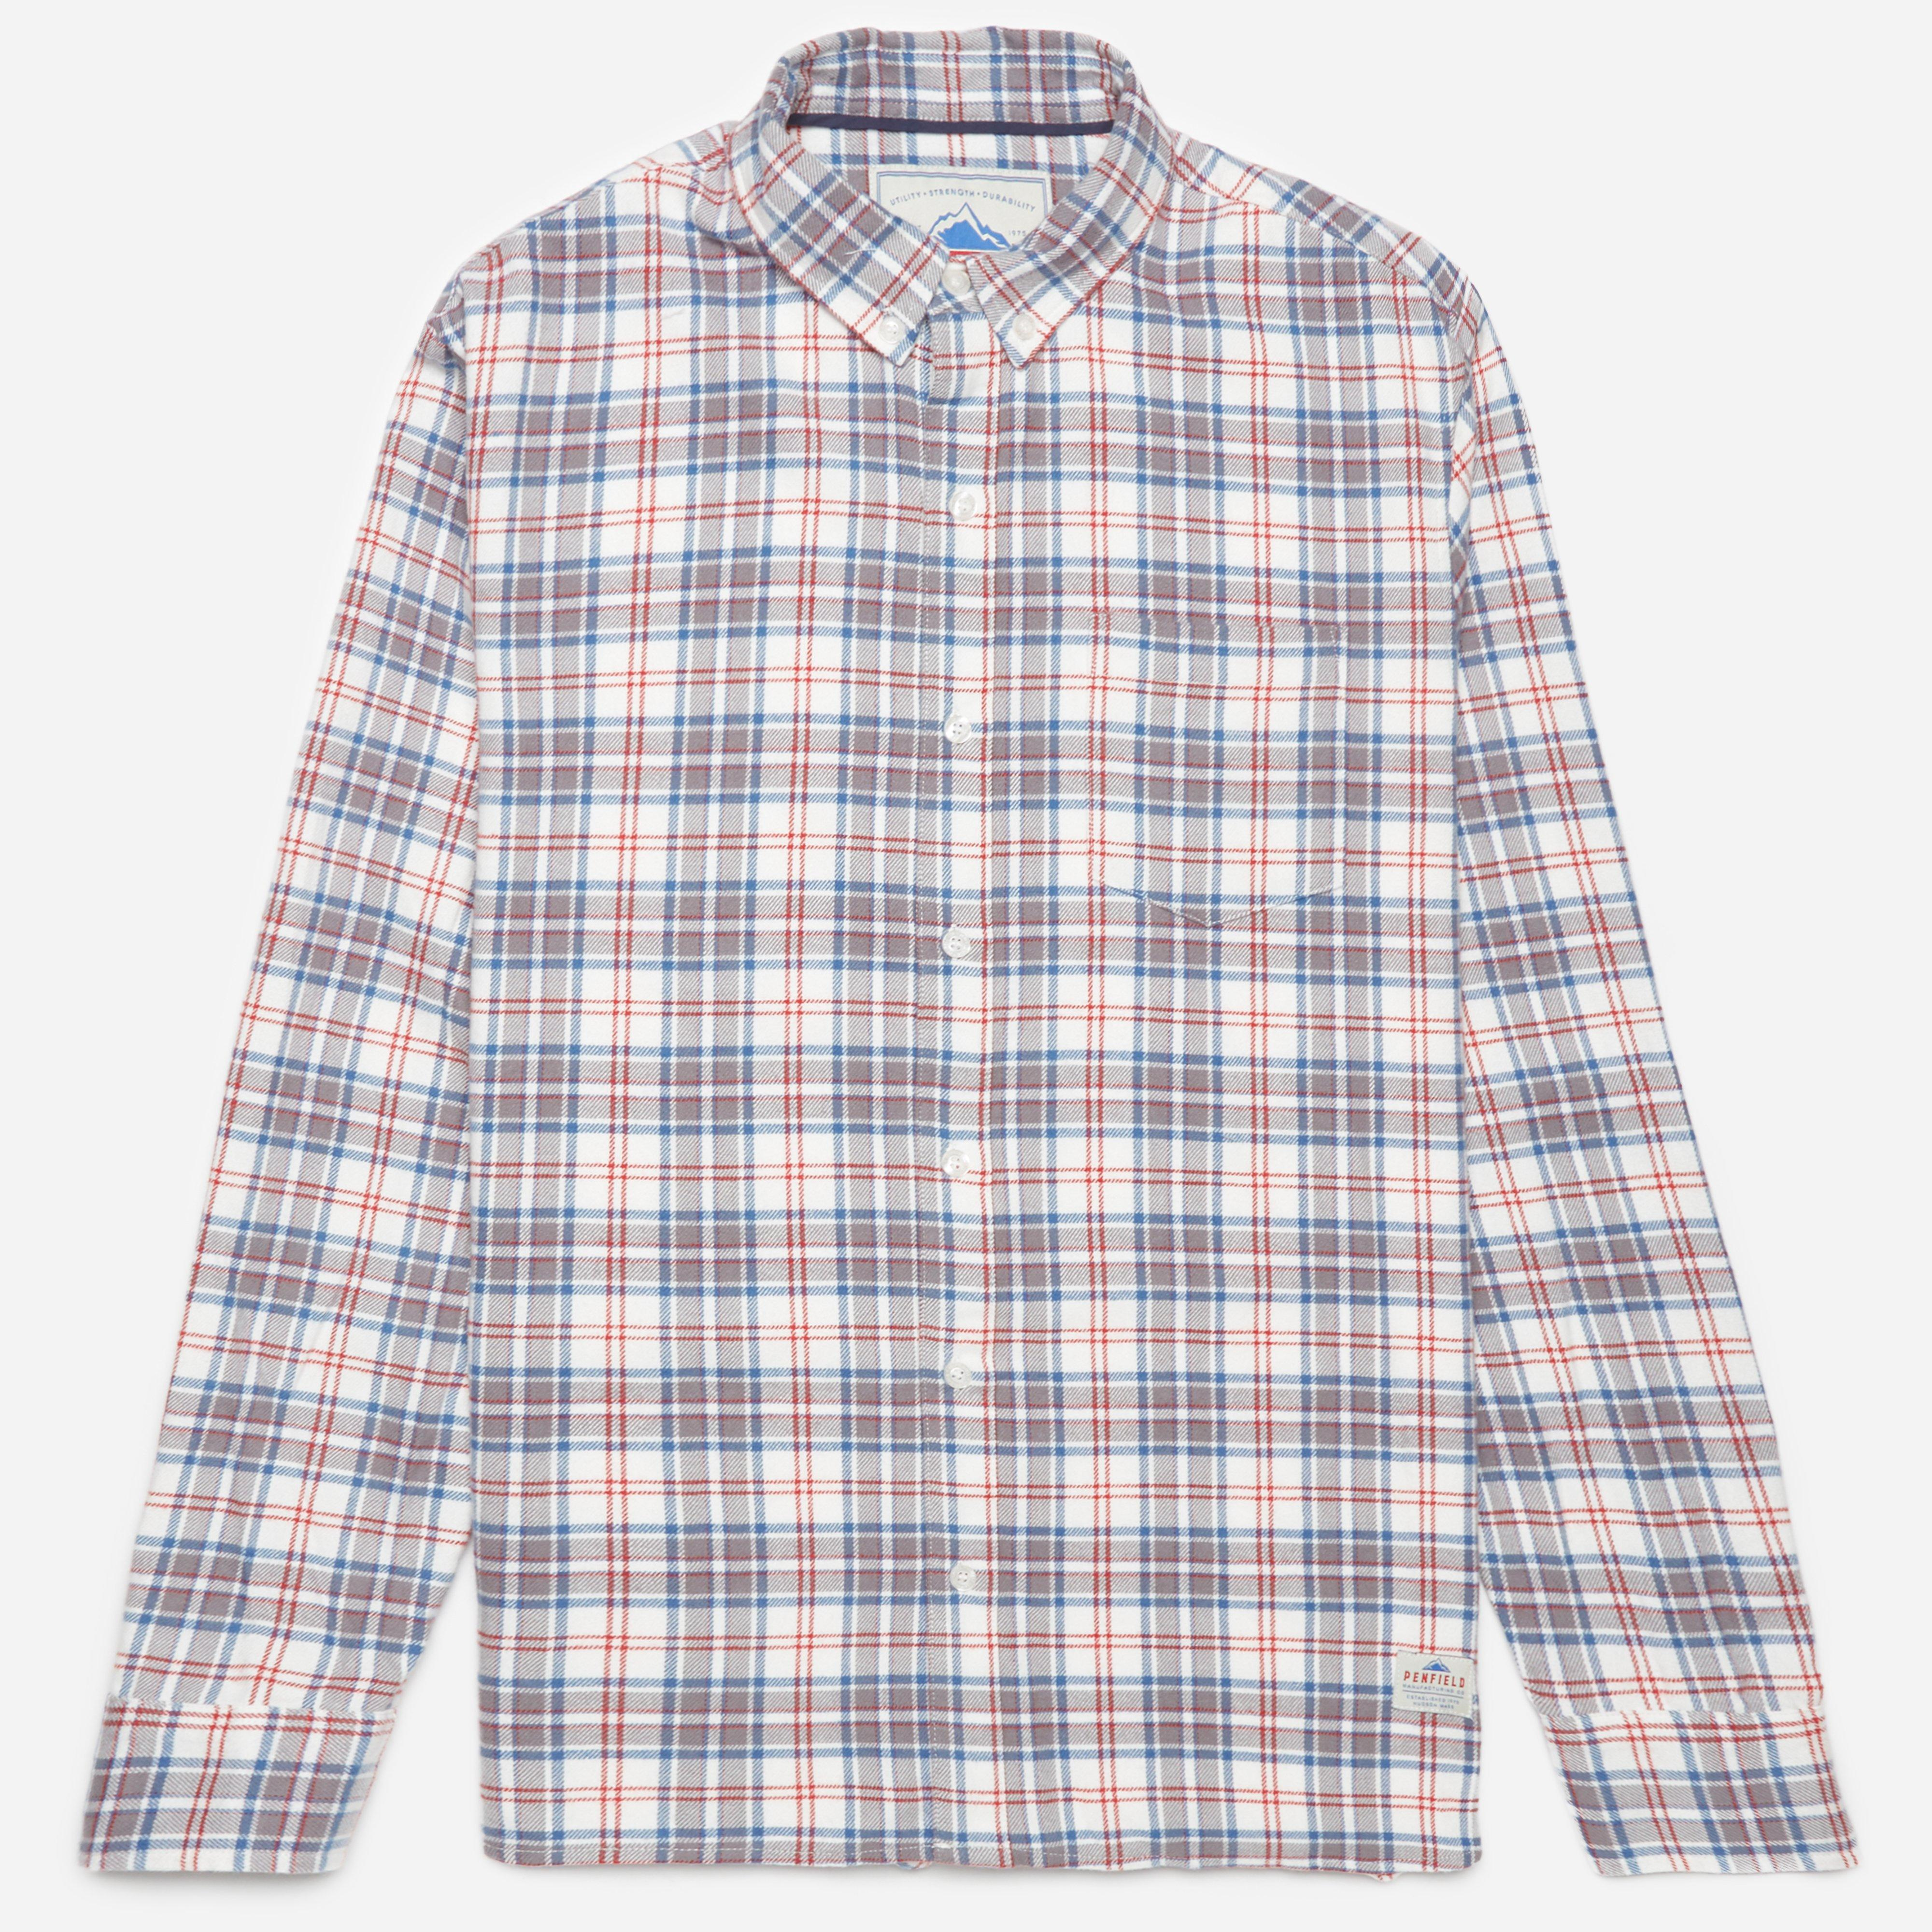 Penfield Pincourt Check Shirt